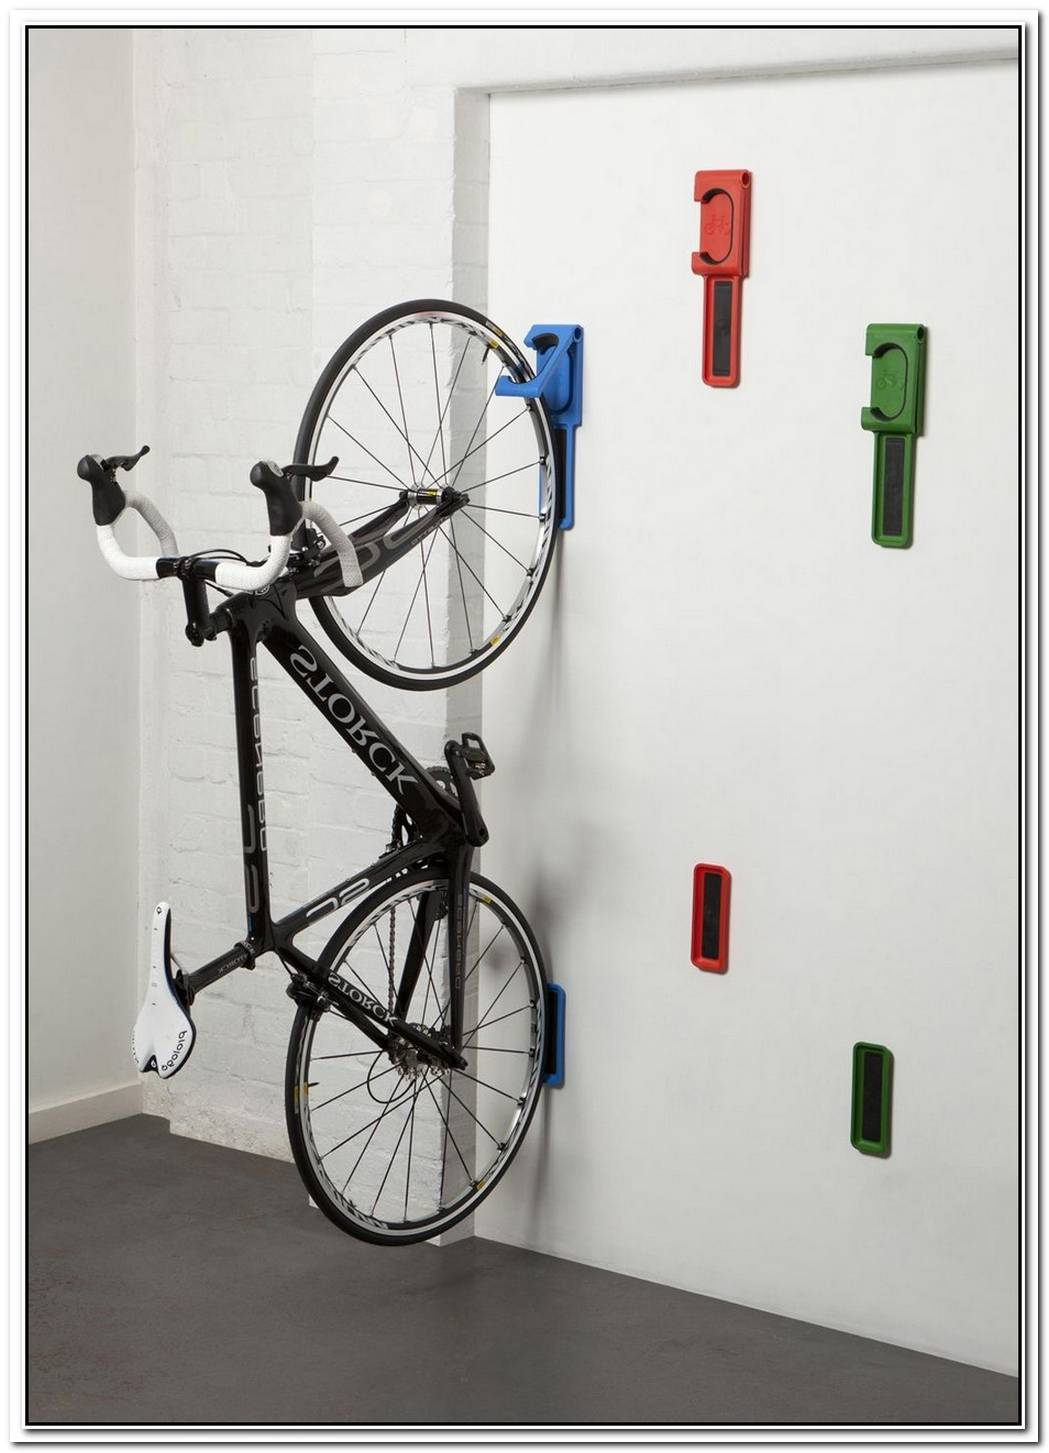 A Few Creative And Inventive Ways To Upcycle A Bicycle